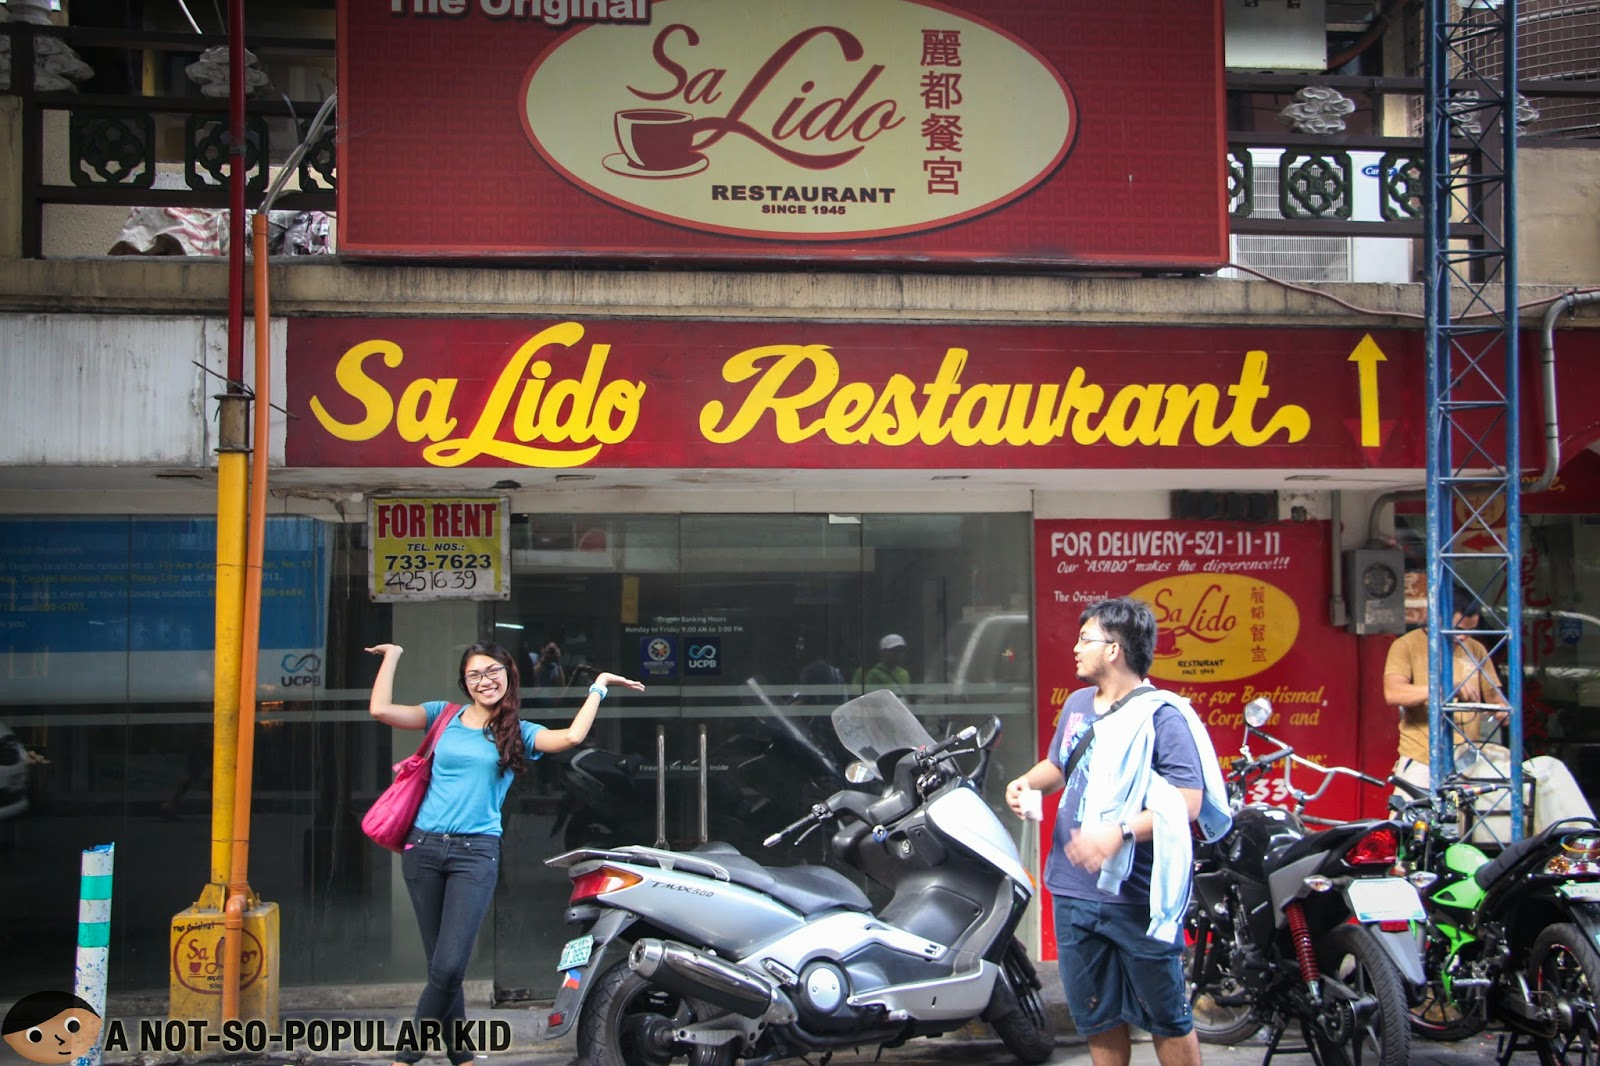 The Original Sa Lido Restaurant in Ongpin Street of Binondo, Manila